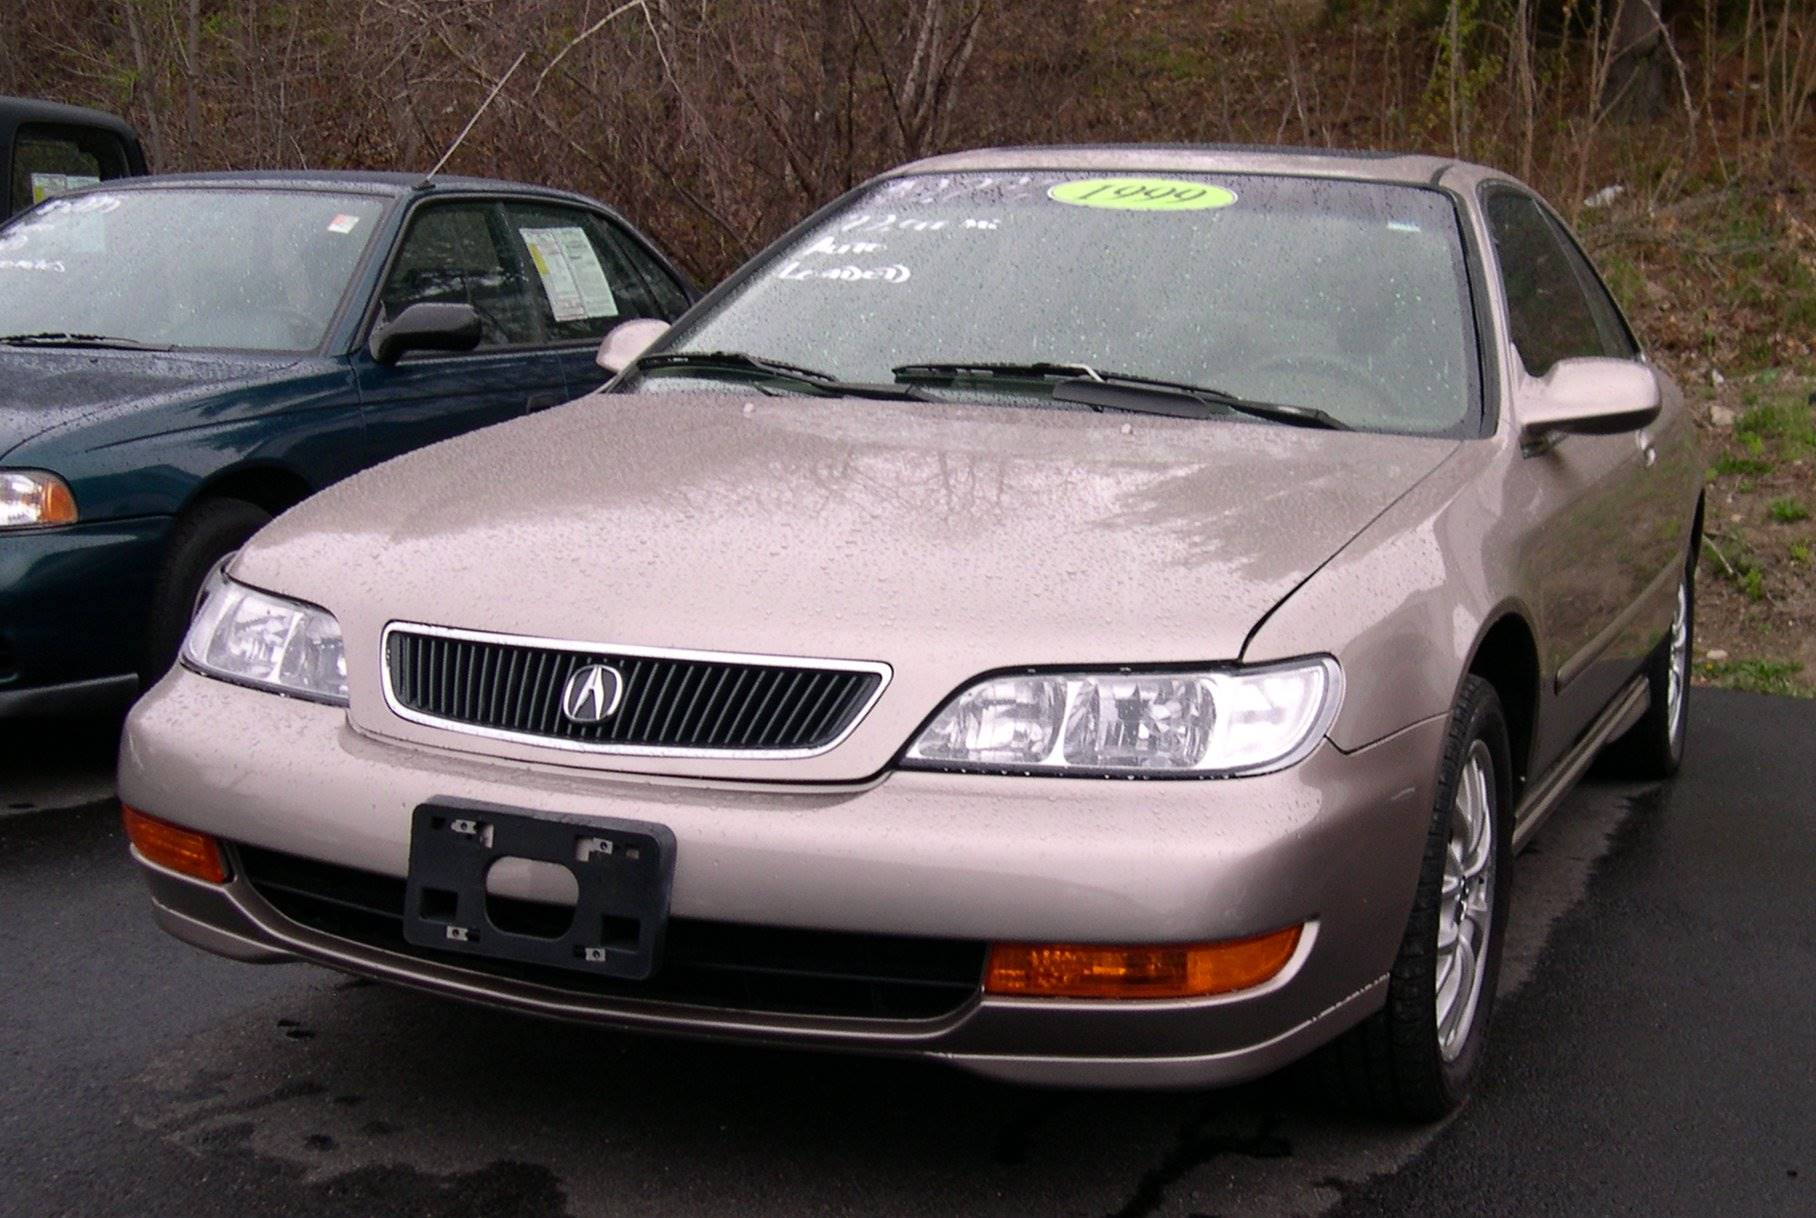 1999 Acura CL 2 Door Coupe 23L Manual